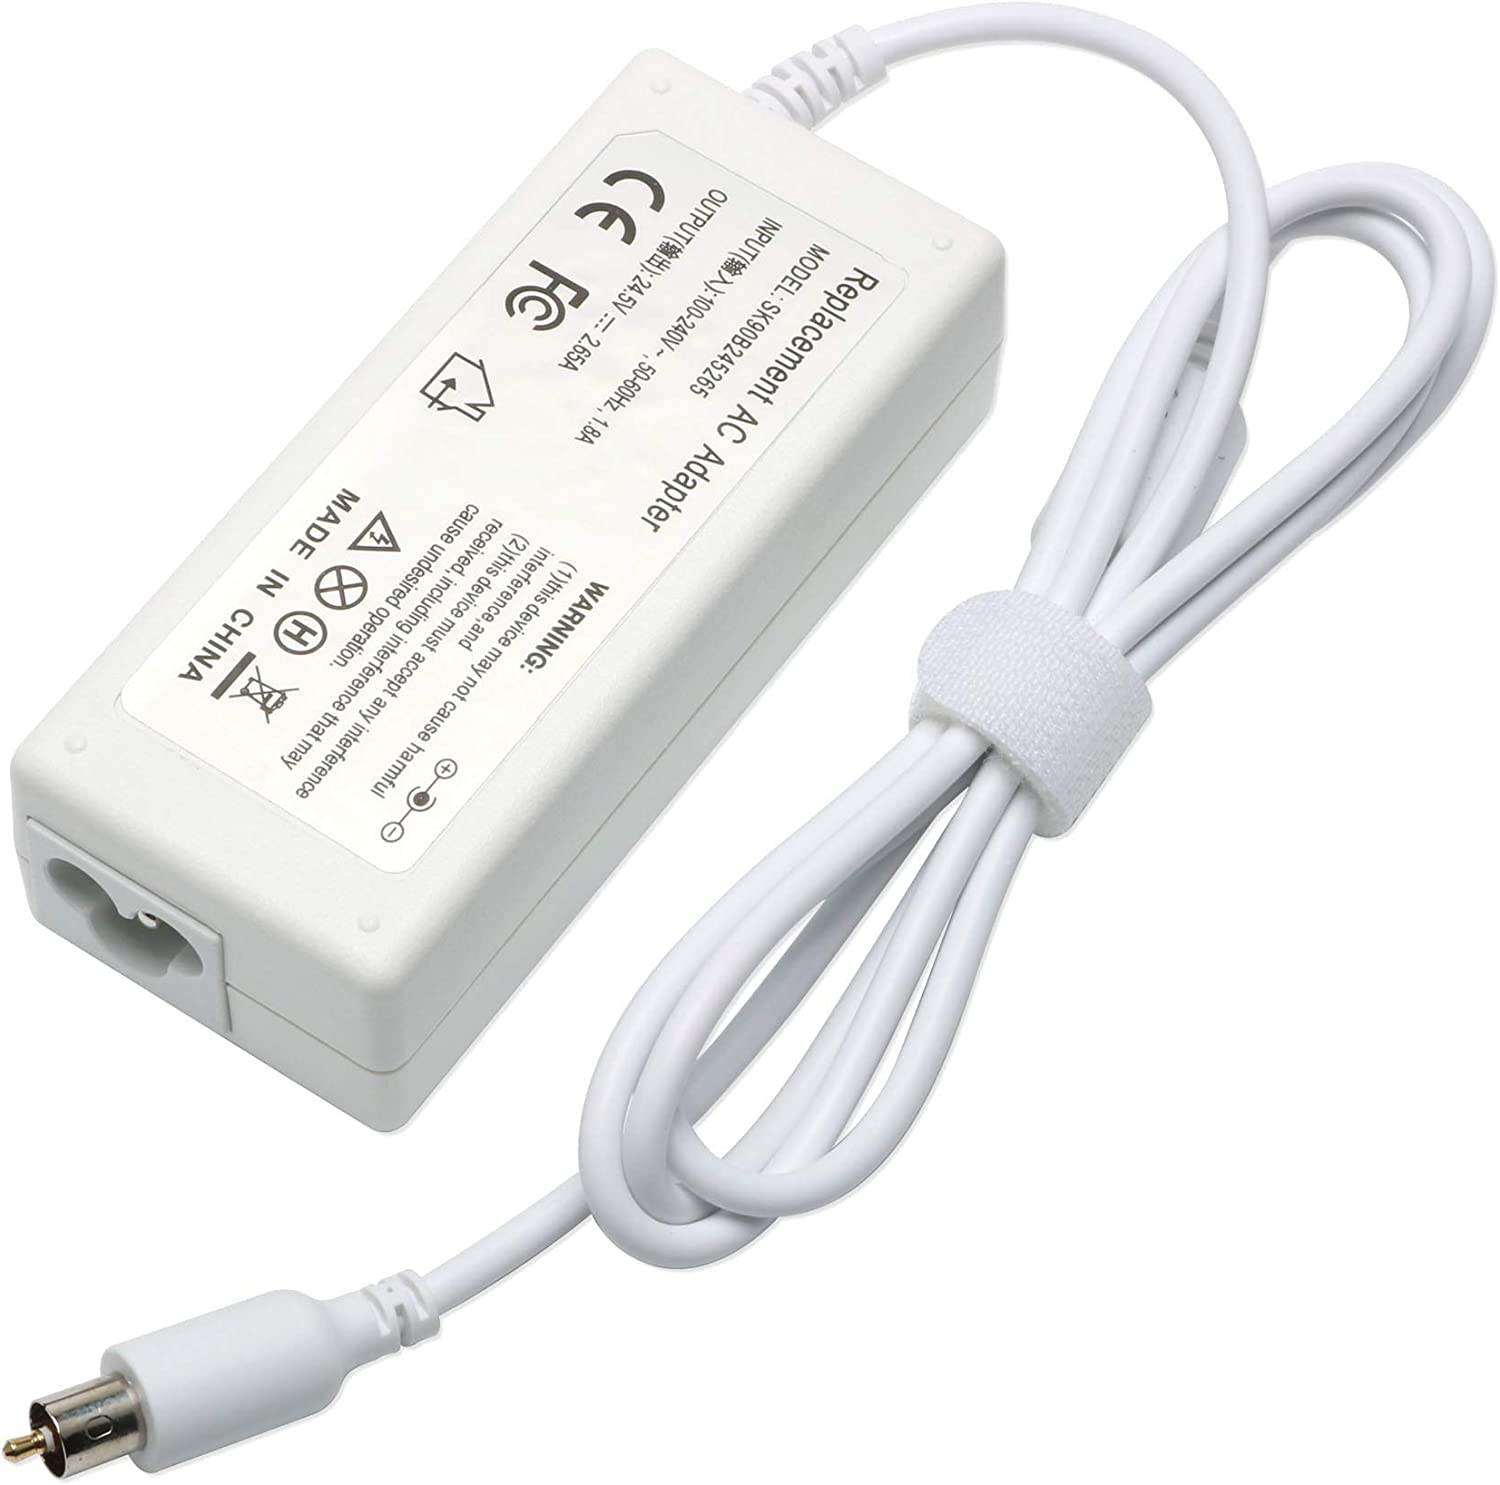 YTech 65w 24.5V 2.65A AC Adapter Charger Power Compatible with for Apple PowerBook G4 1A1021 A1133 M4328 M8943 White